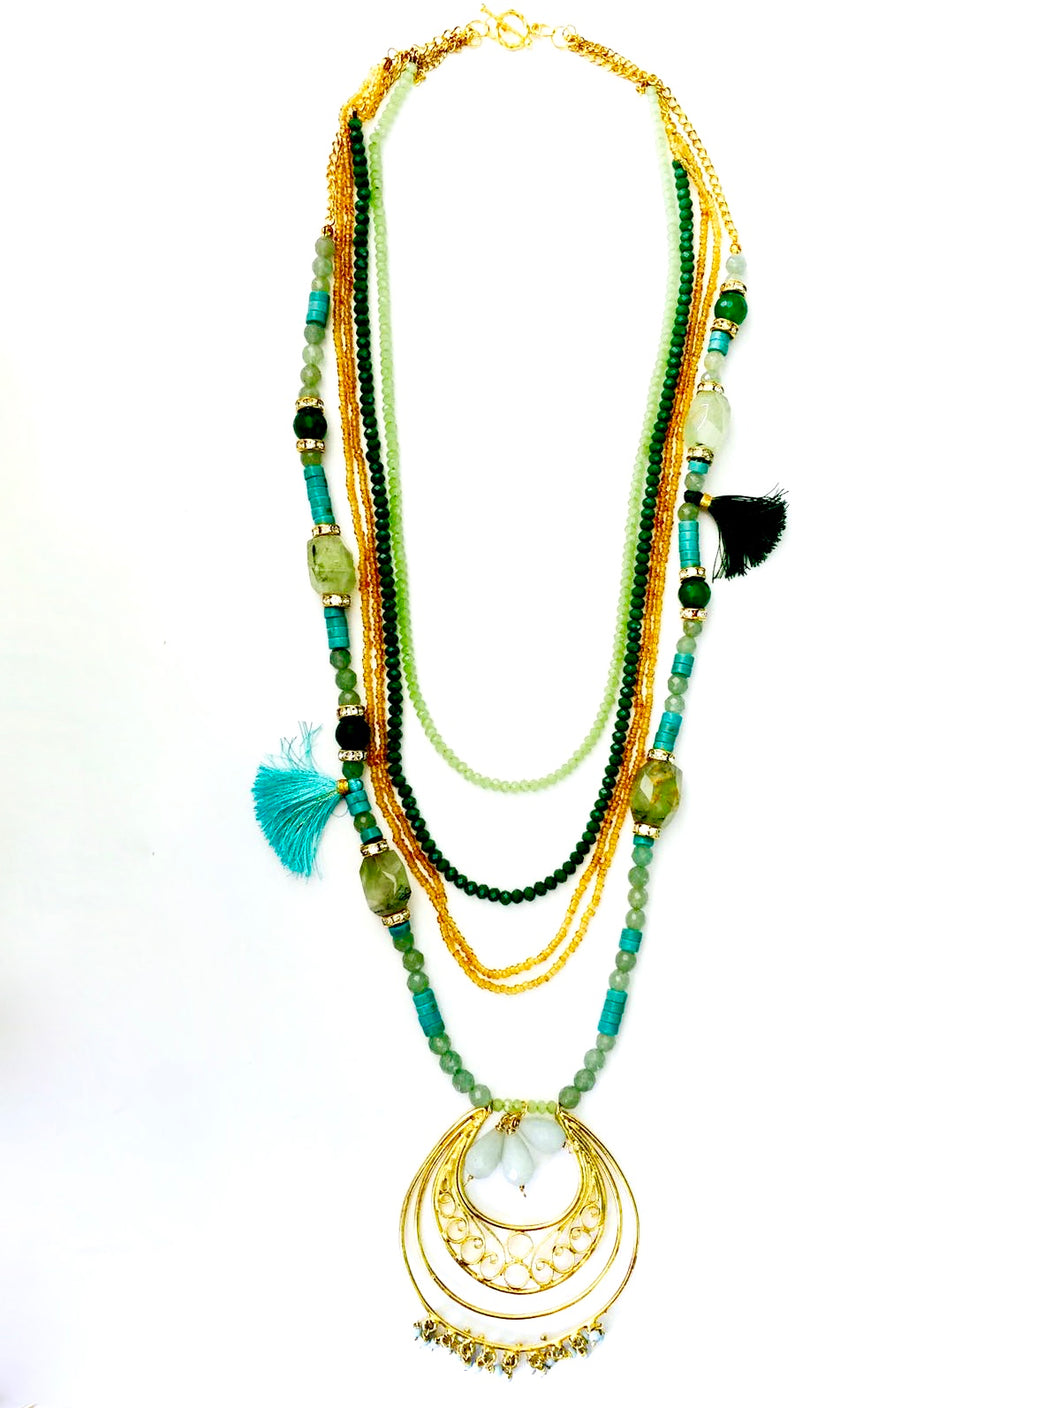 Multi Strand Filigree Gold Chain Necklace in Turquoise and Emerald